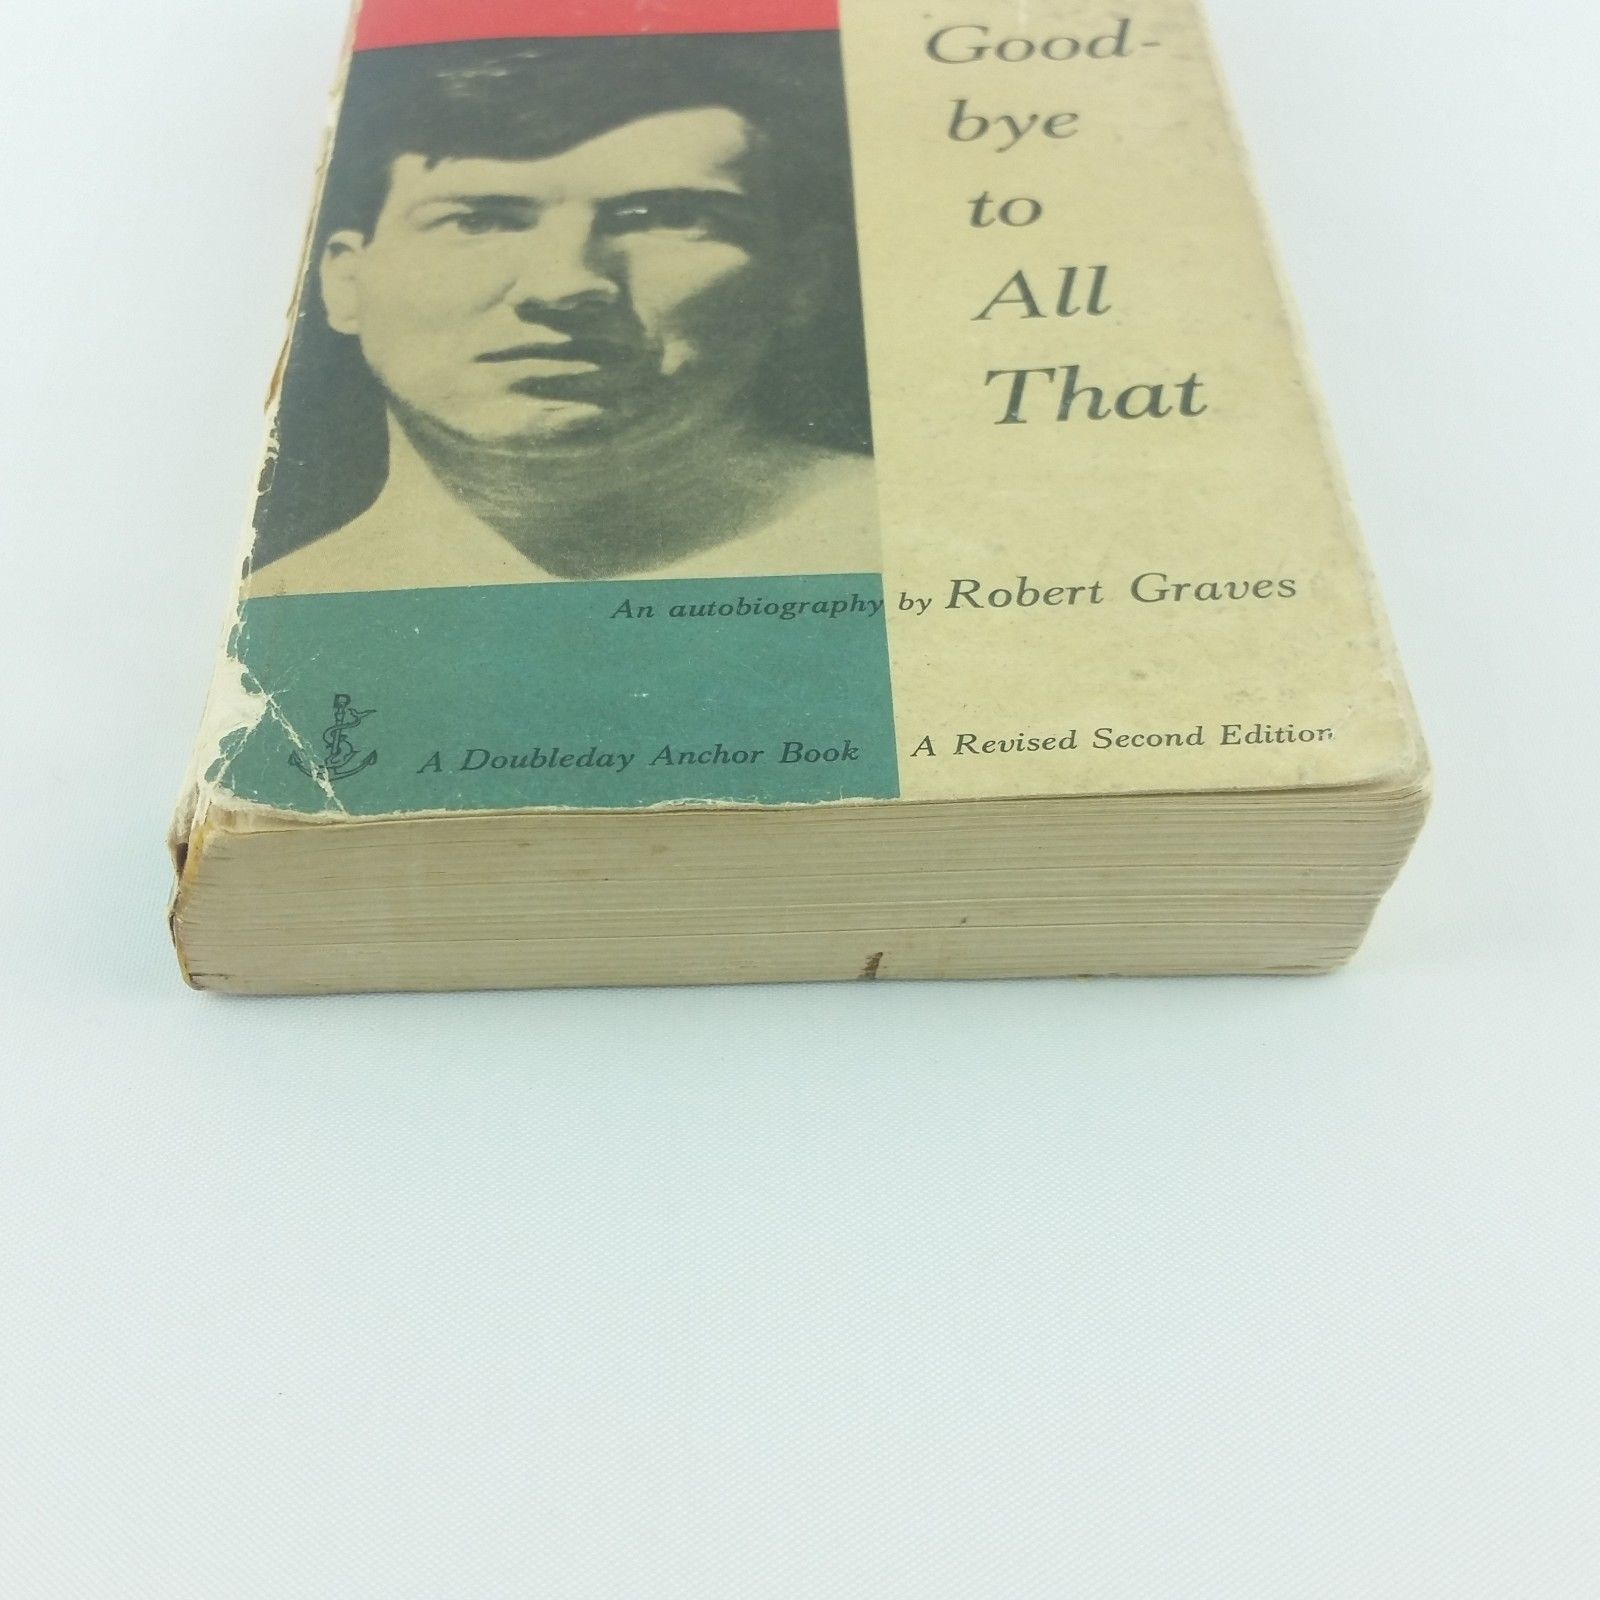 Good-bye to All That Robert Graves 1957 Vintage Book Paperback